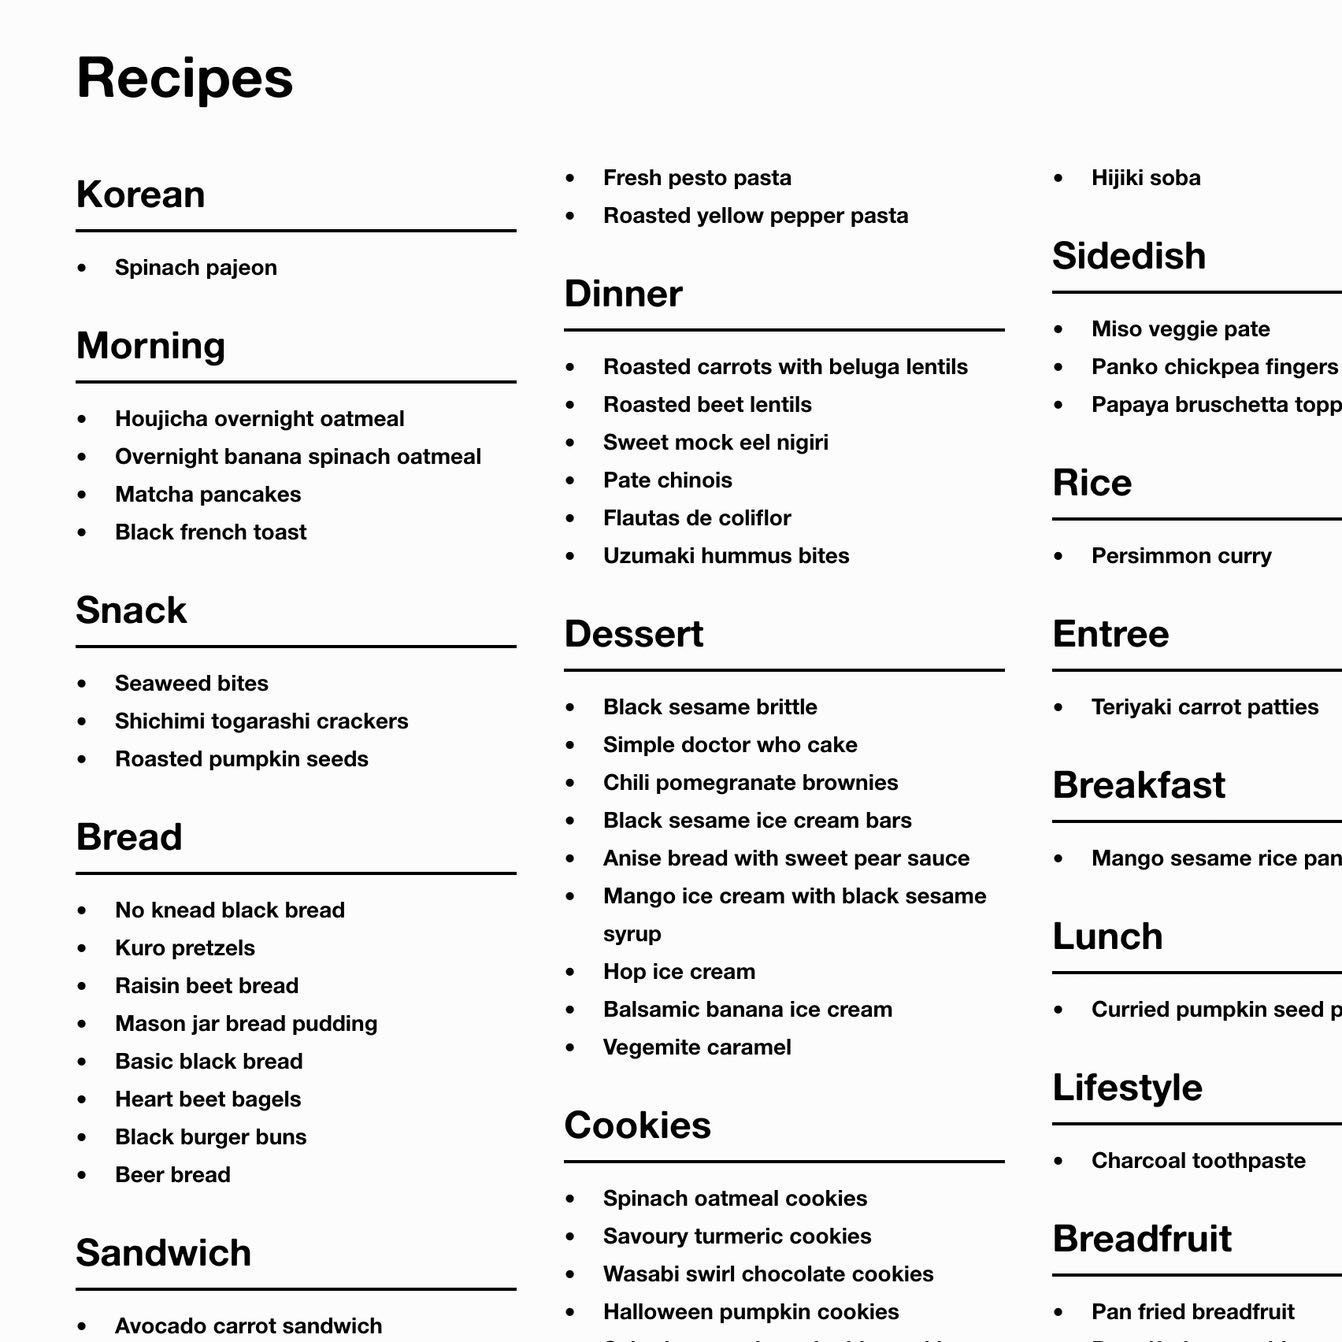 Recipes Listing